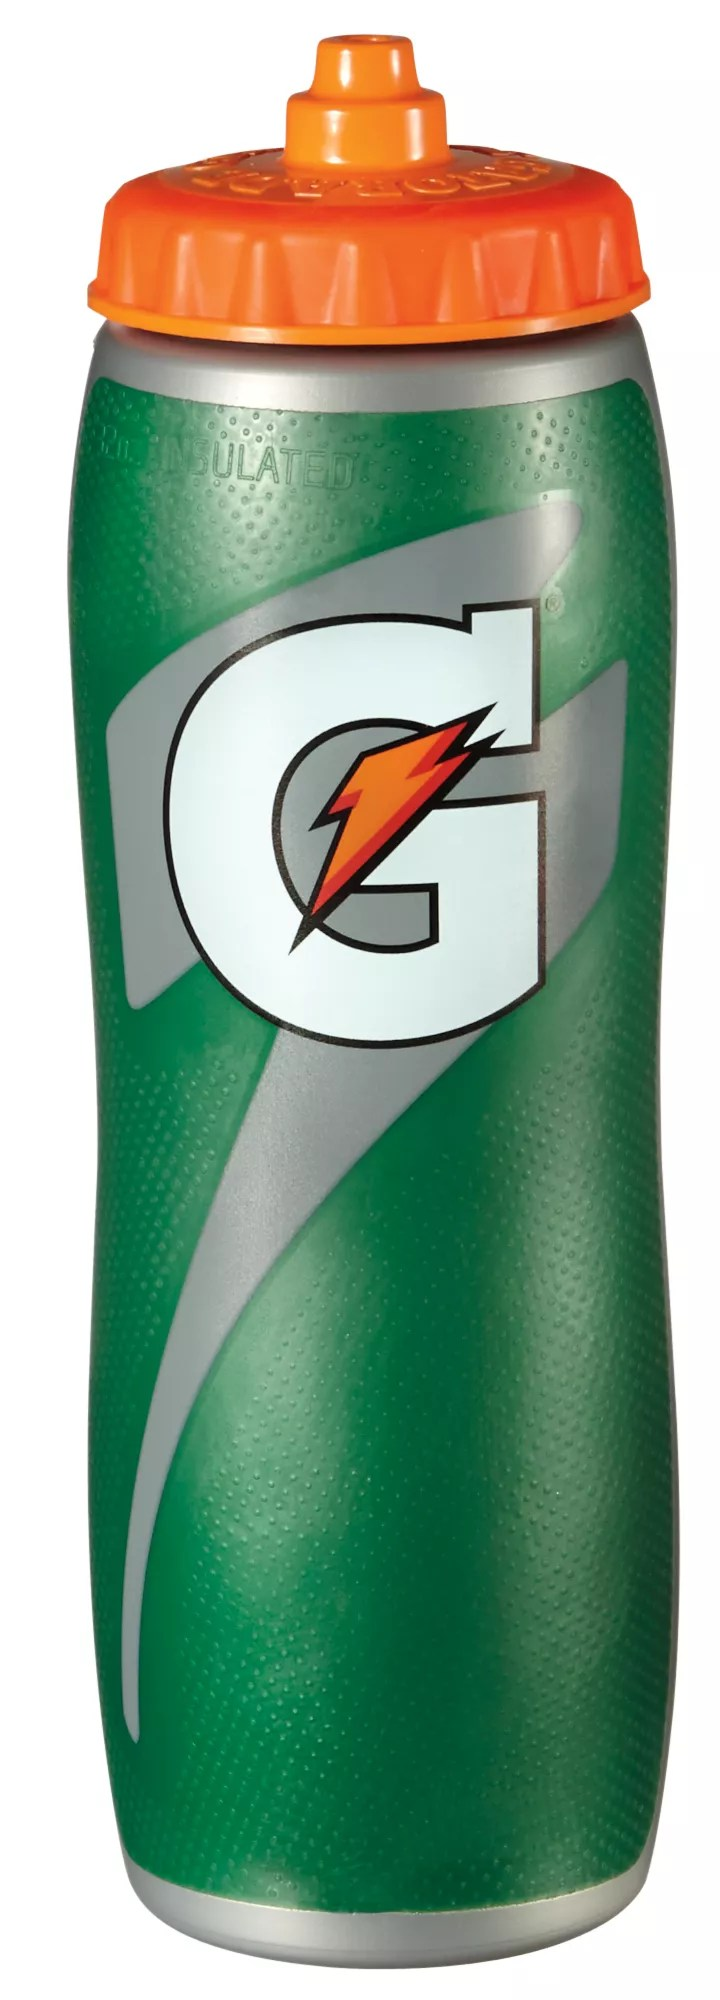 Gatorade 32 Oz. Insulated Squeeze Bottle Dick' Sporting